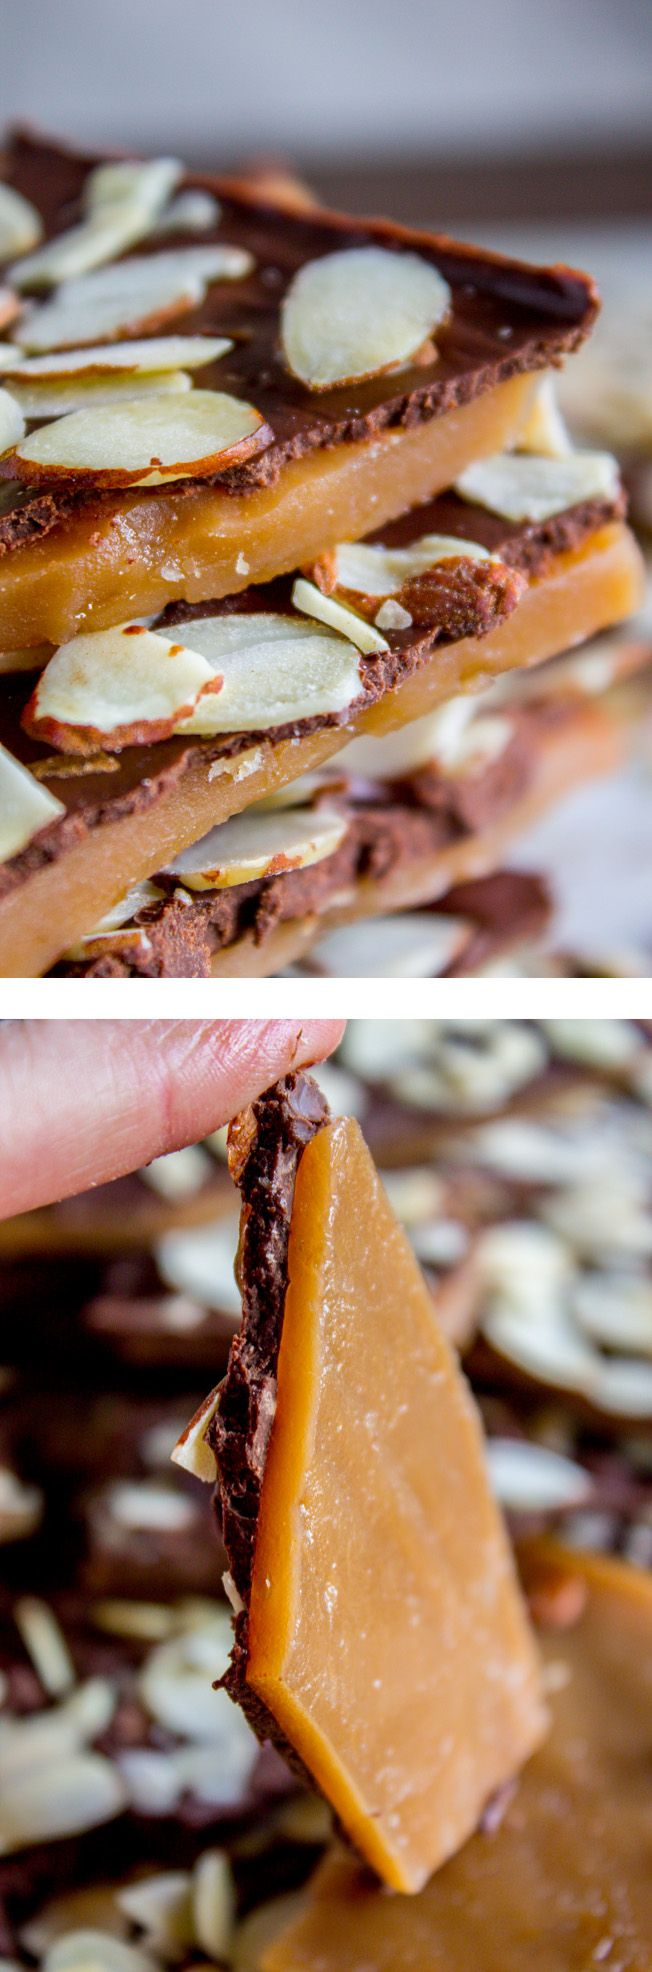 This is the BEST recipe for homemade English Toffee, hands down! This is such an easy and QUICK treat to make for the Christmas holidays. You don't even need a candy thermometer! Eric is re-washing the sheet pan that he just washed, because there was still butter on it from making this toffee on it …